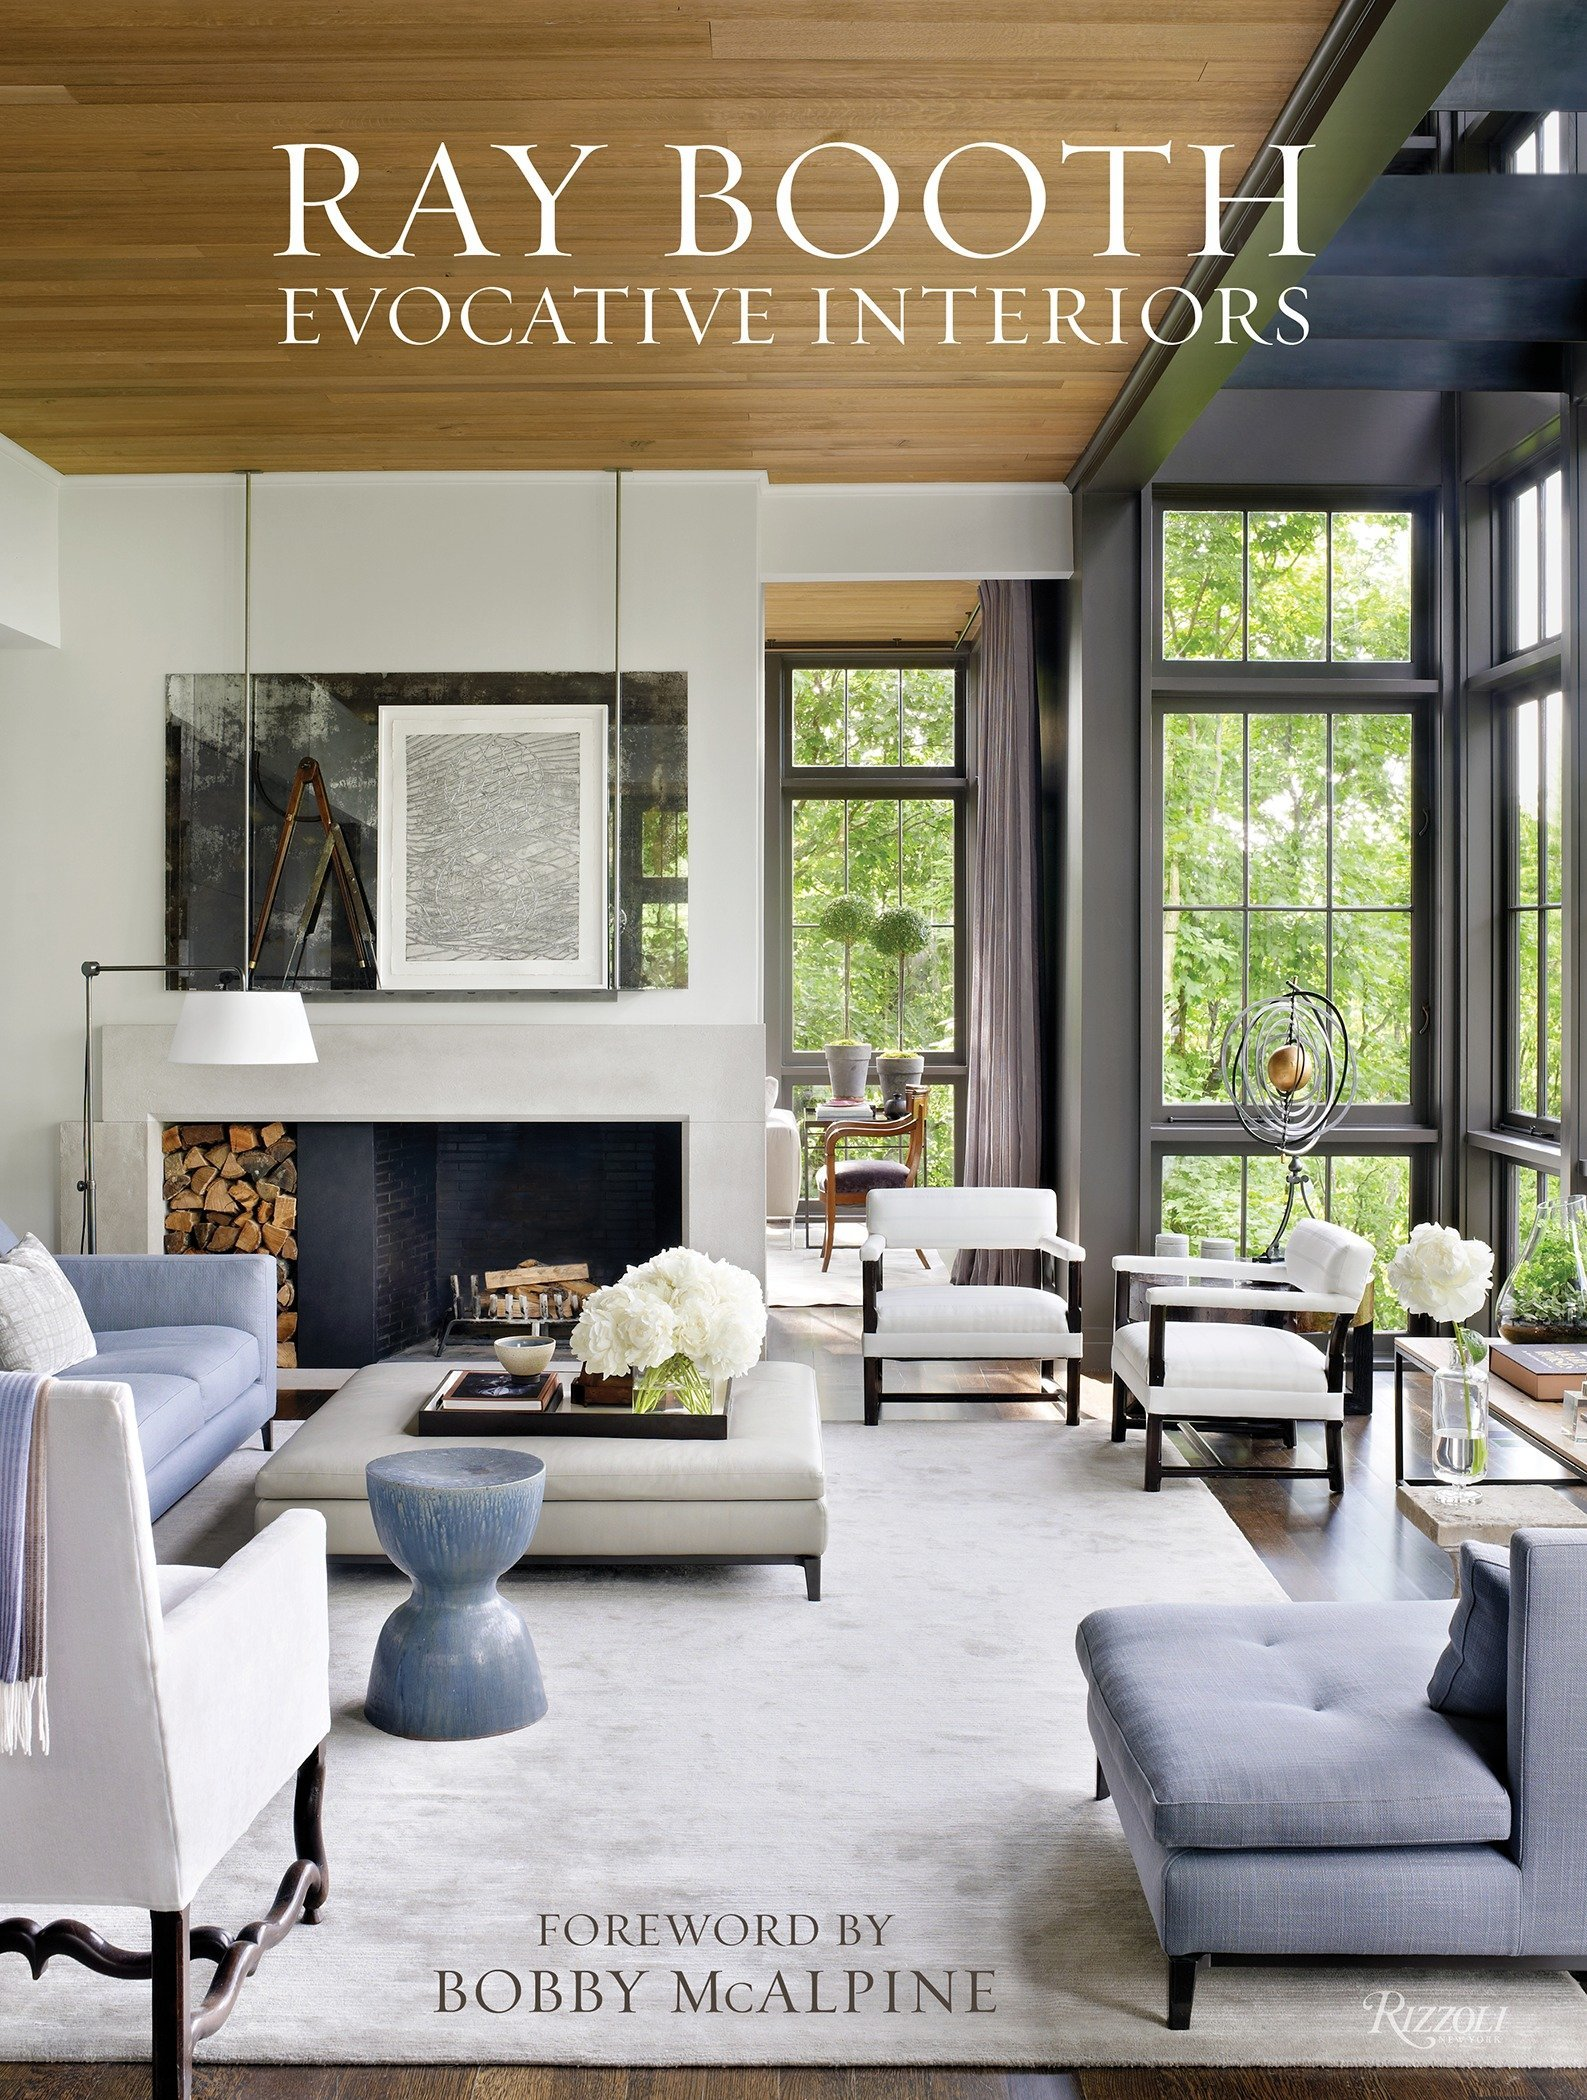 Ray Booth Evocative Interiors product image